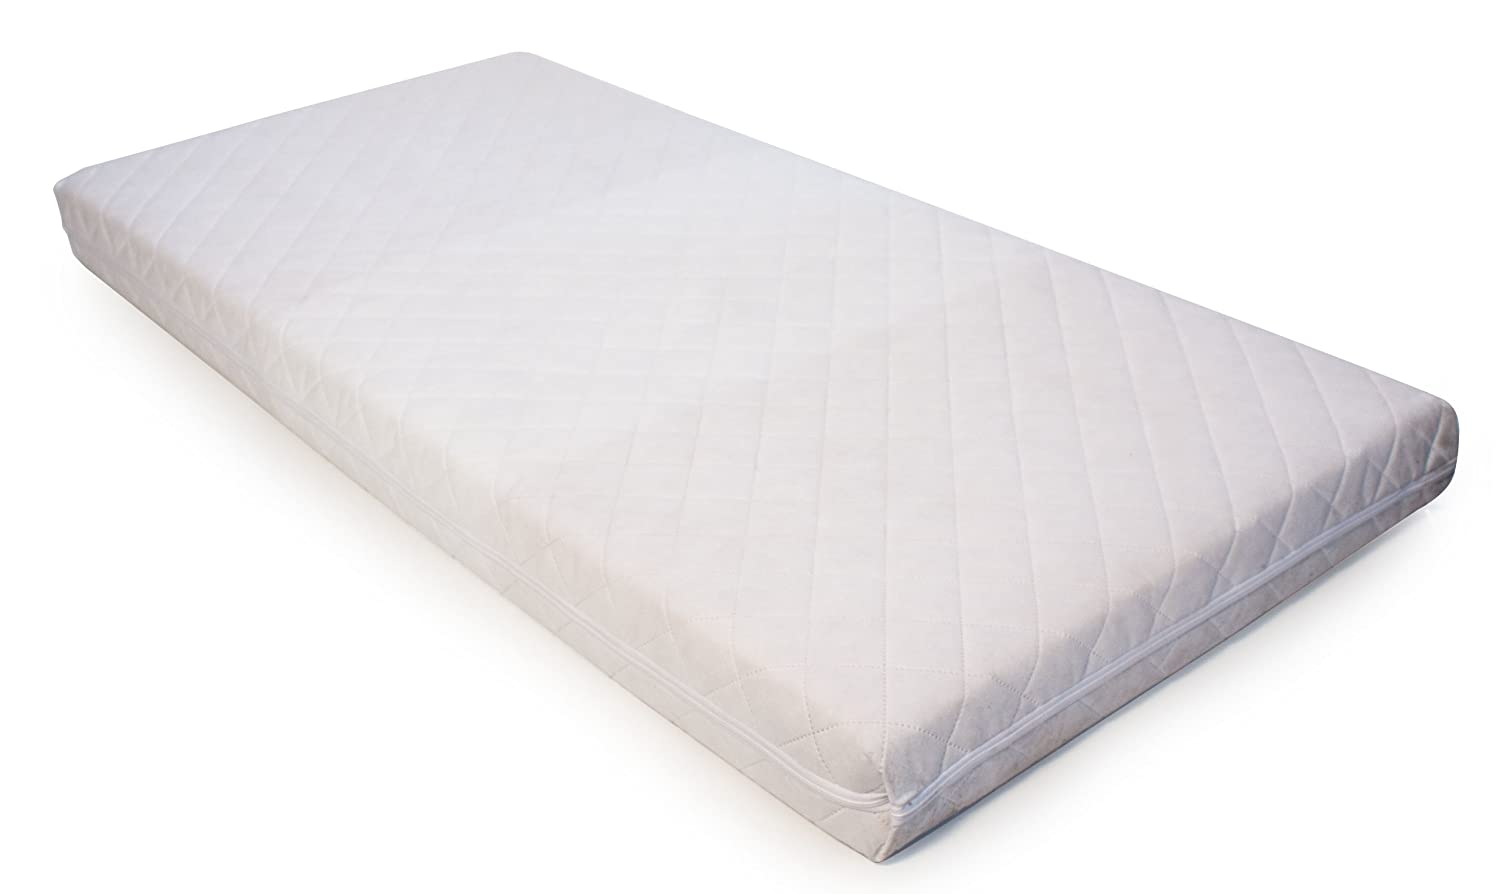 Cosatto Springi Cot Bed Mattress - 140 x 70 x 10 cm CT2651